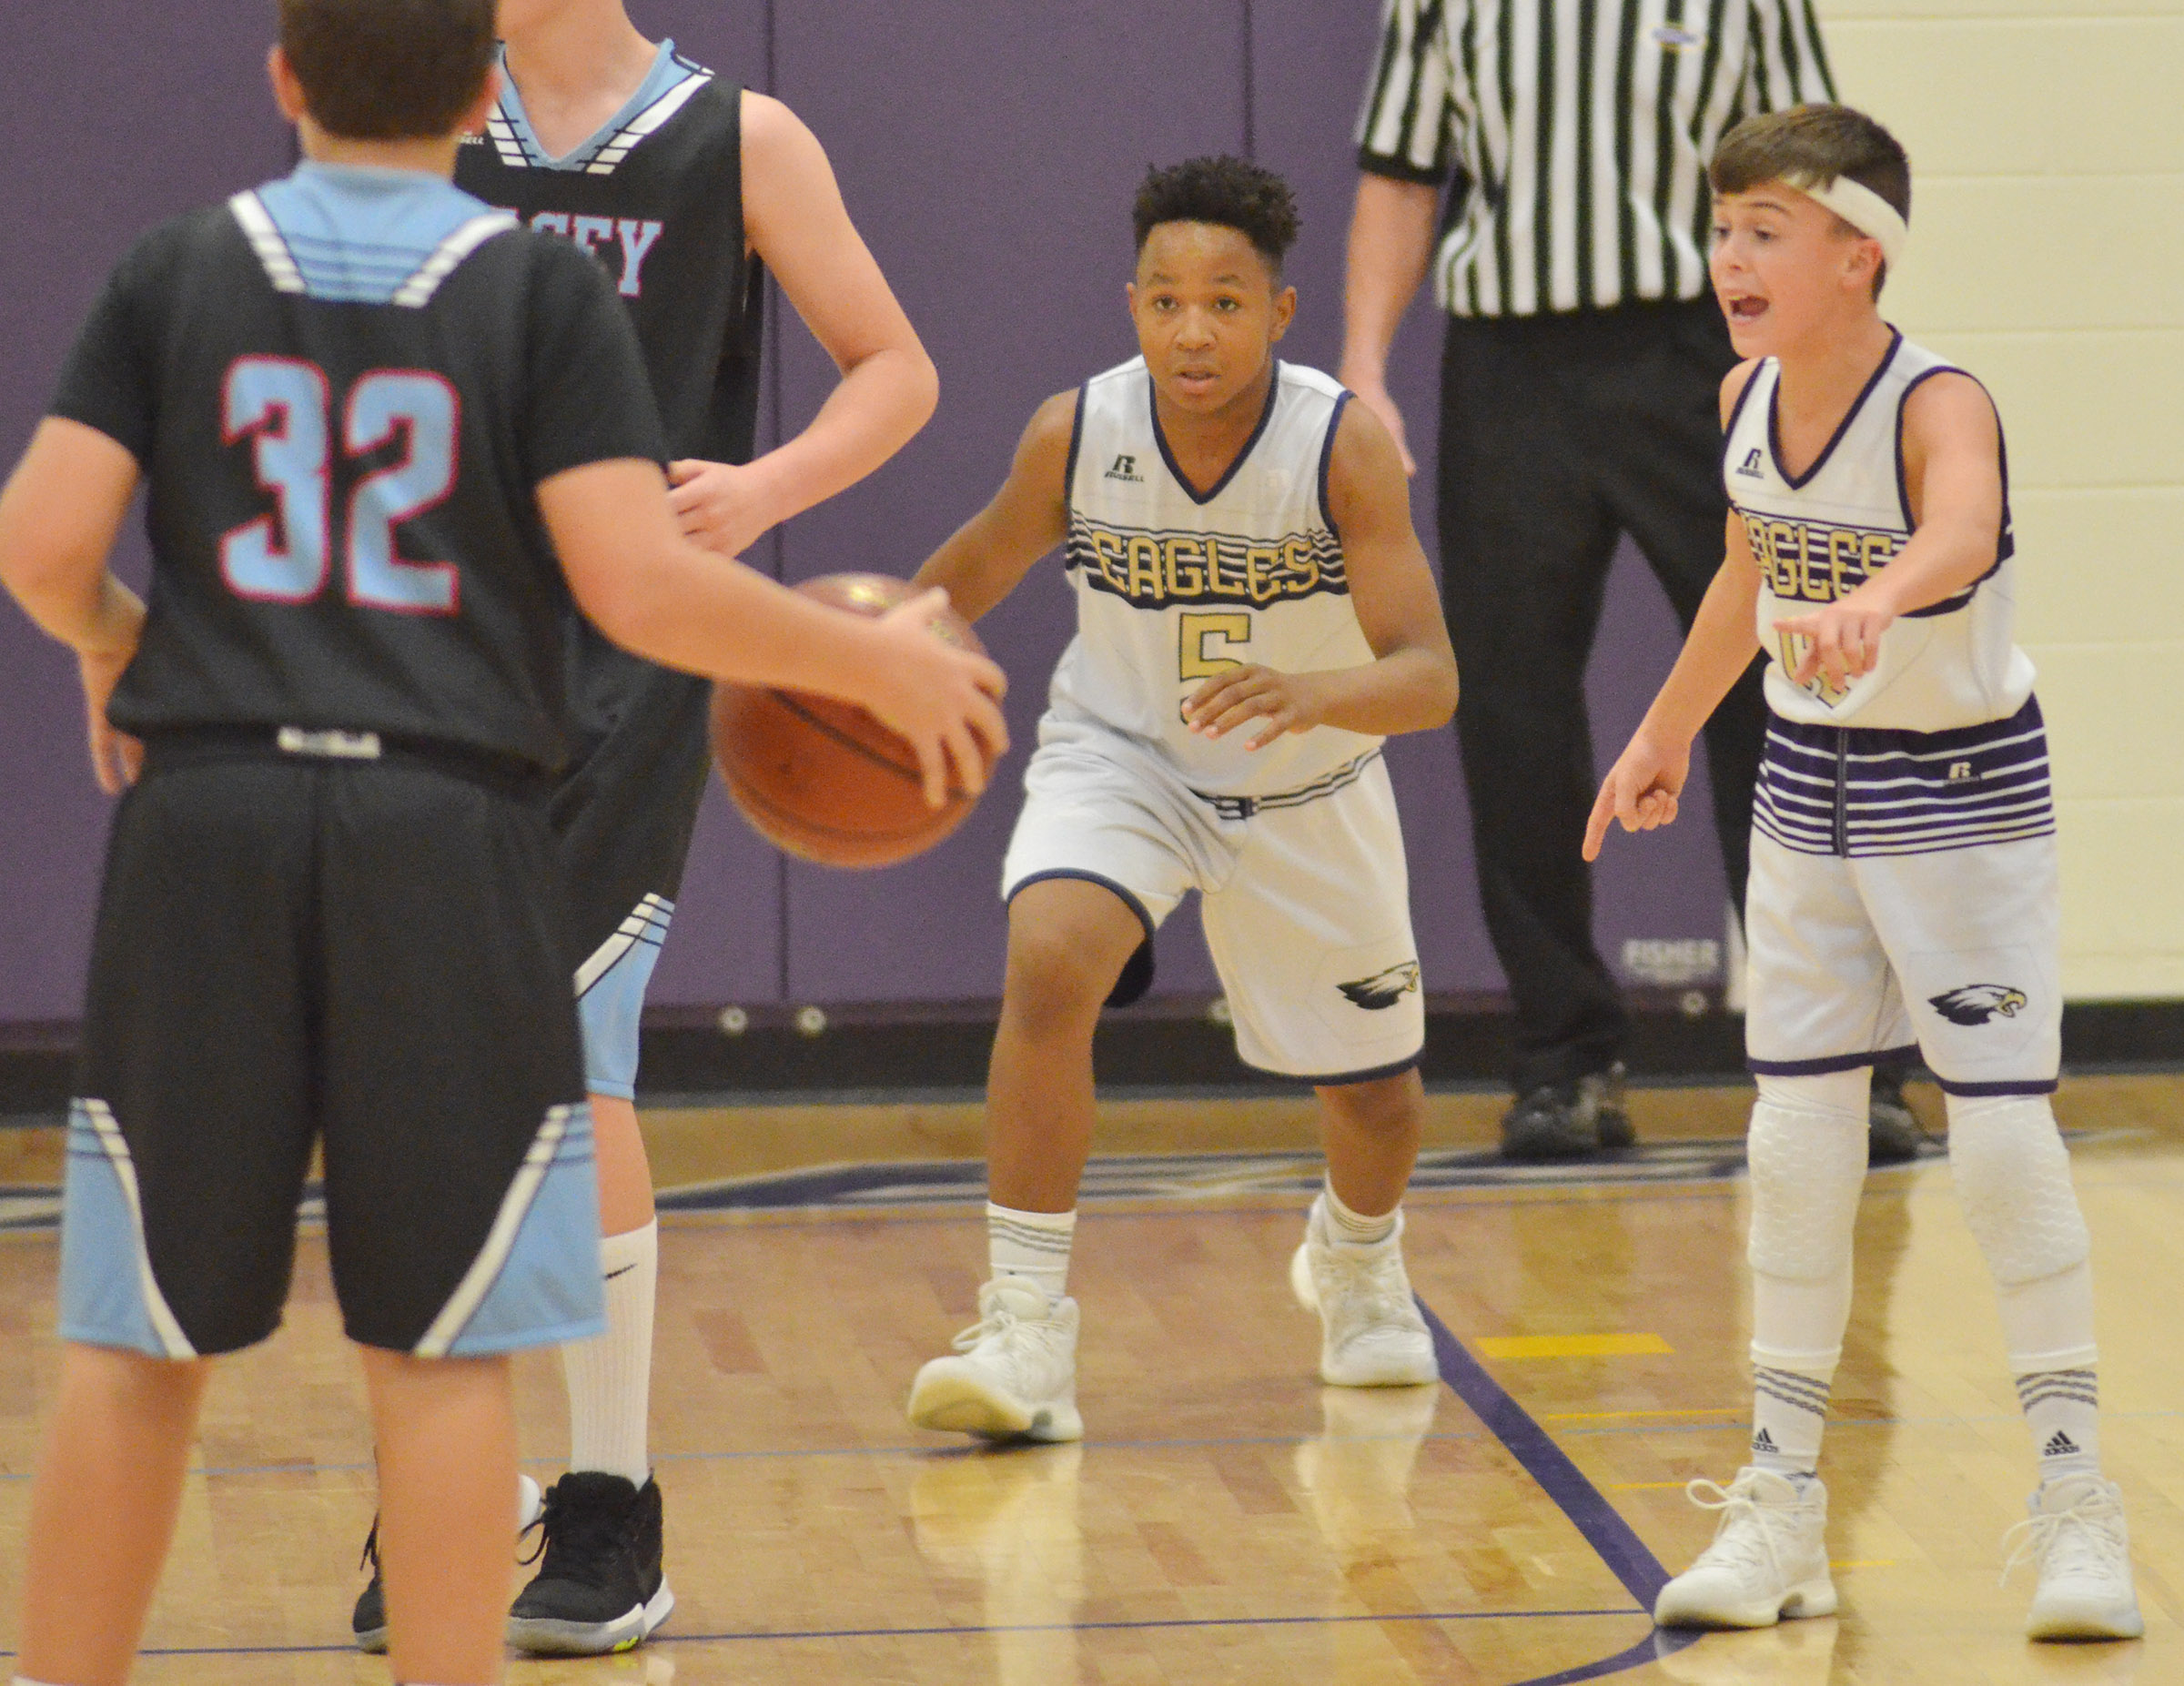 CMS seventh-graders Deondre Weathers, at left, and Chase Hord play defense.